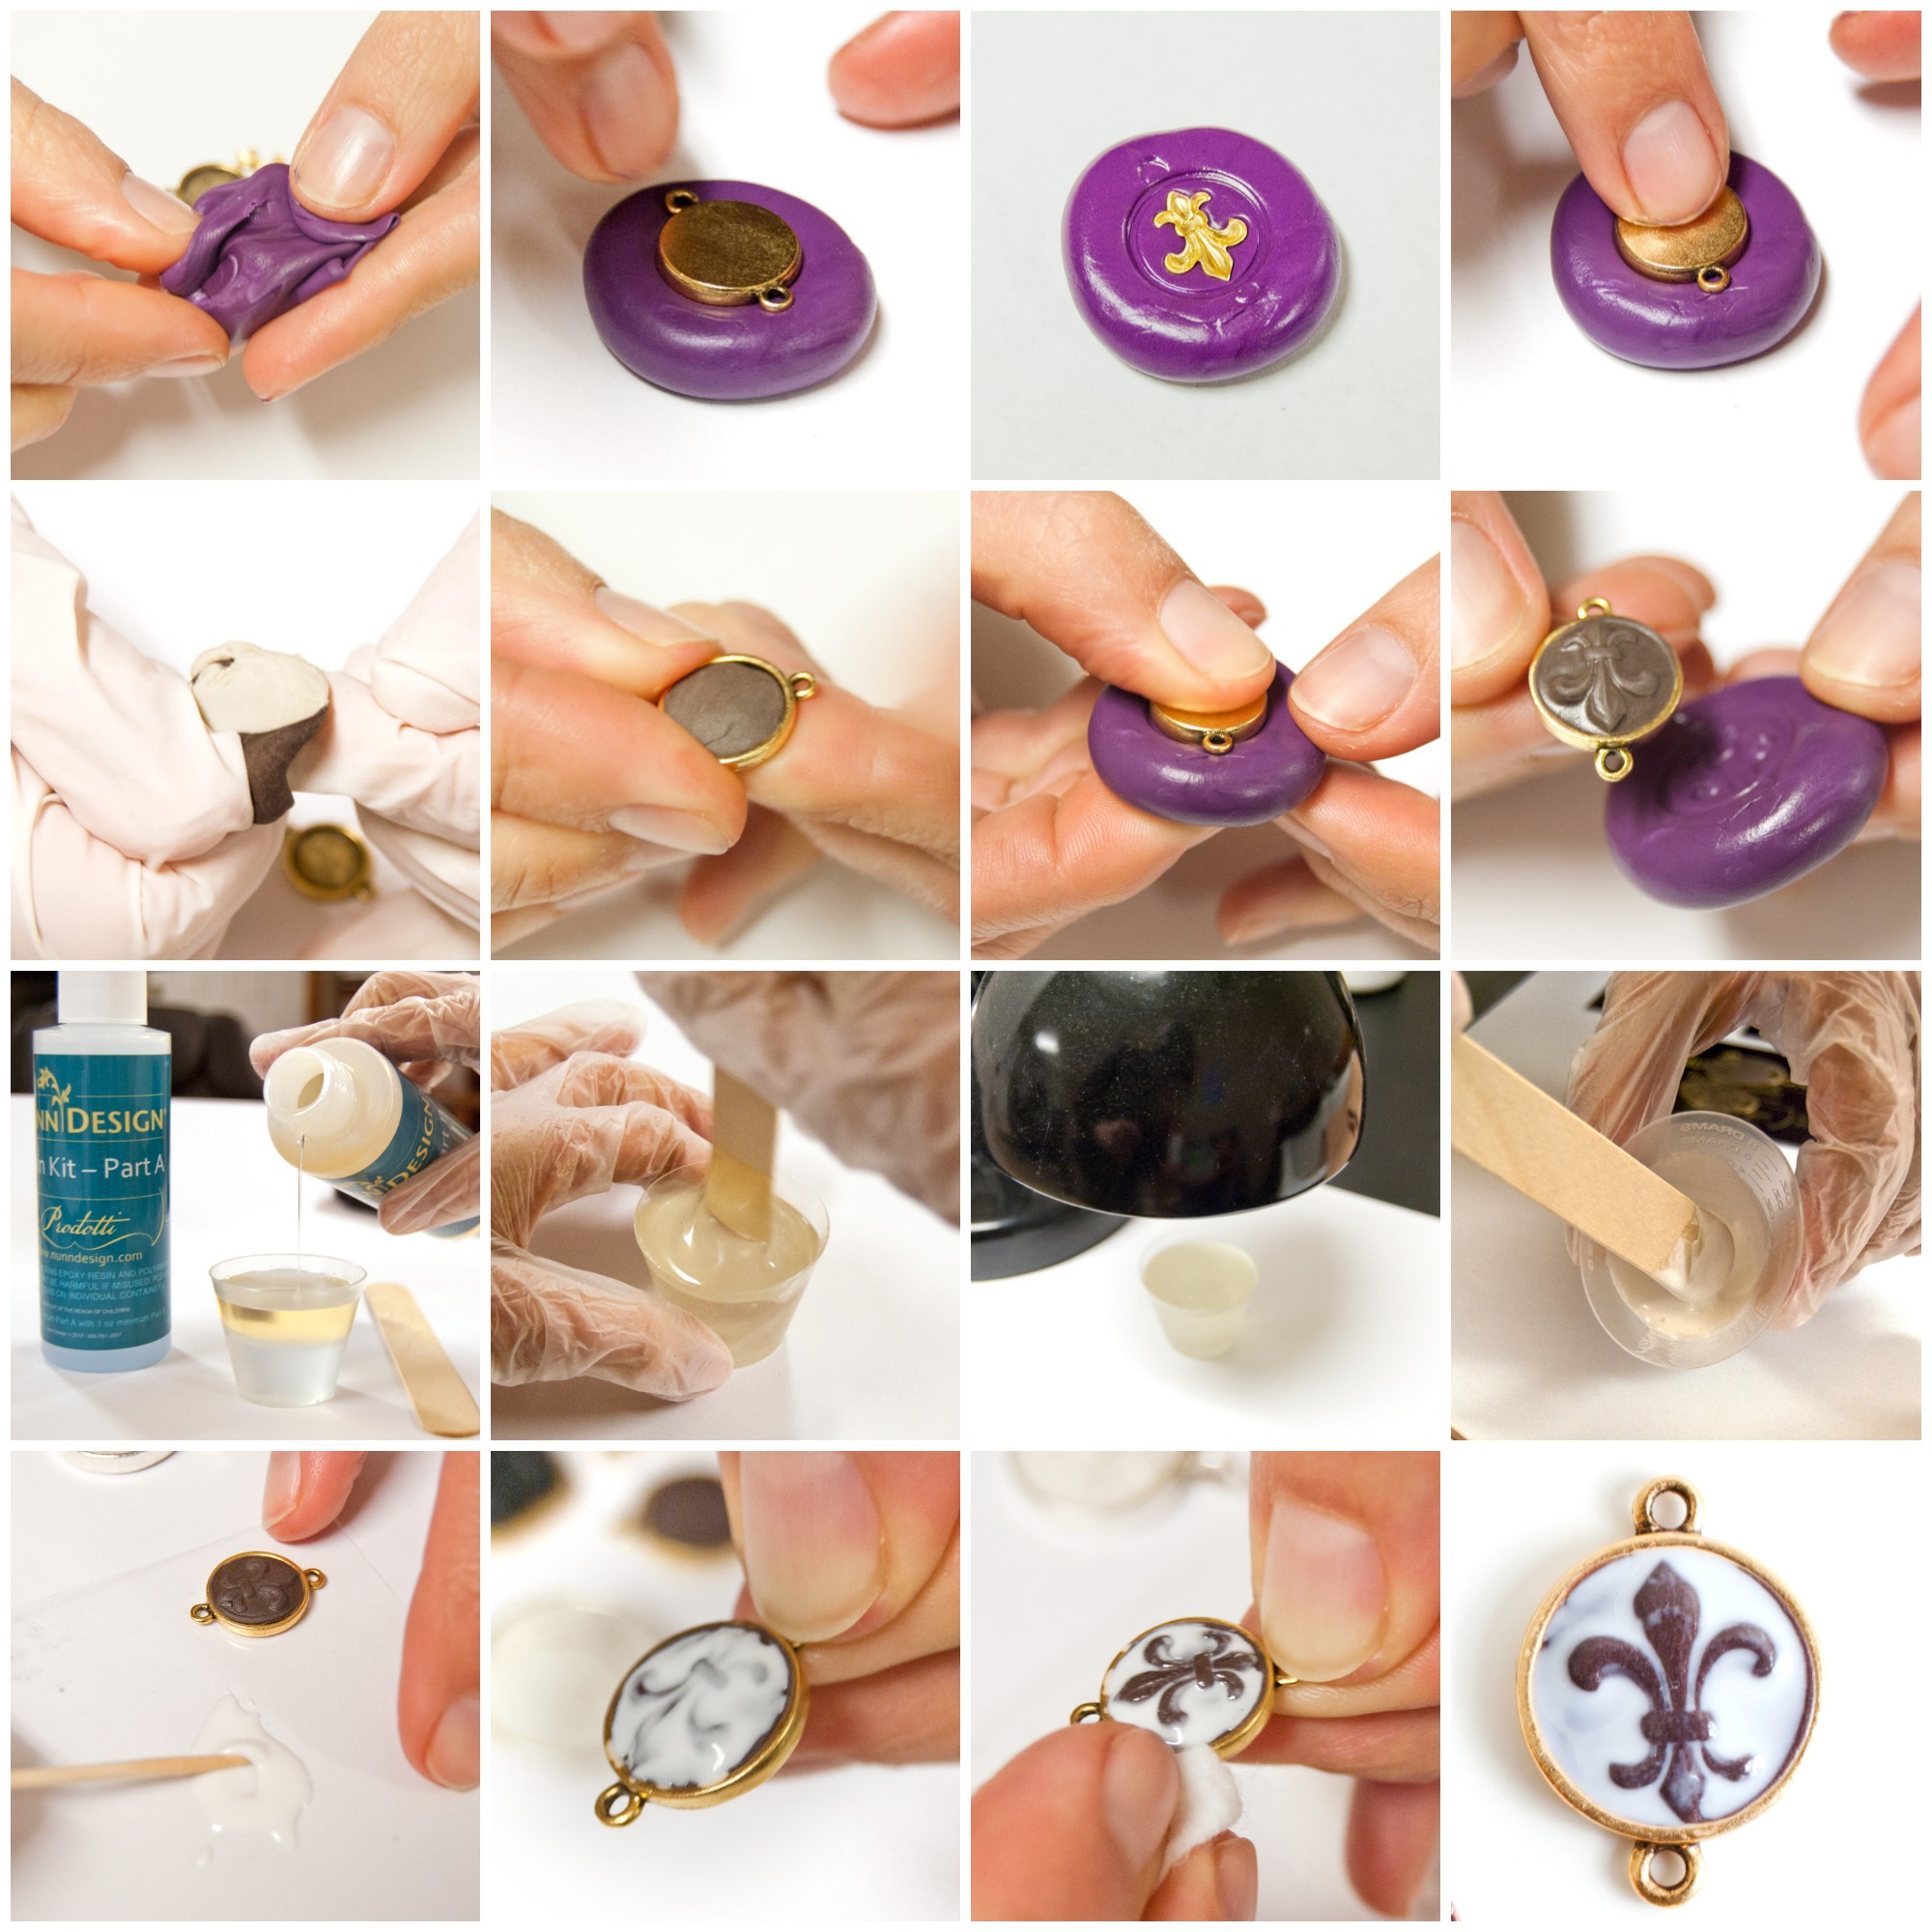 Make These Sculpted Relief Epoxy Clay and Resin Pendants